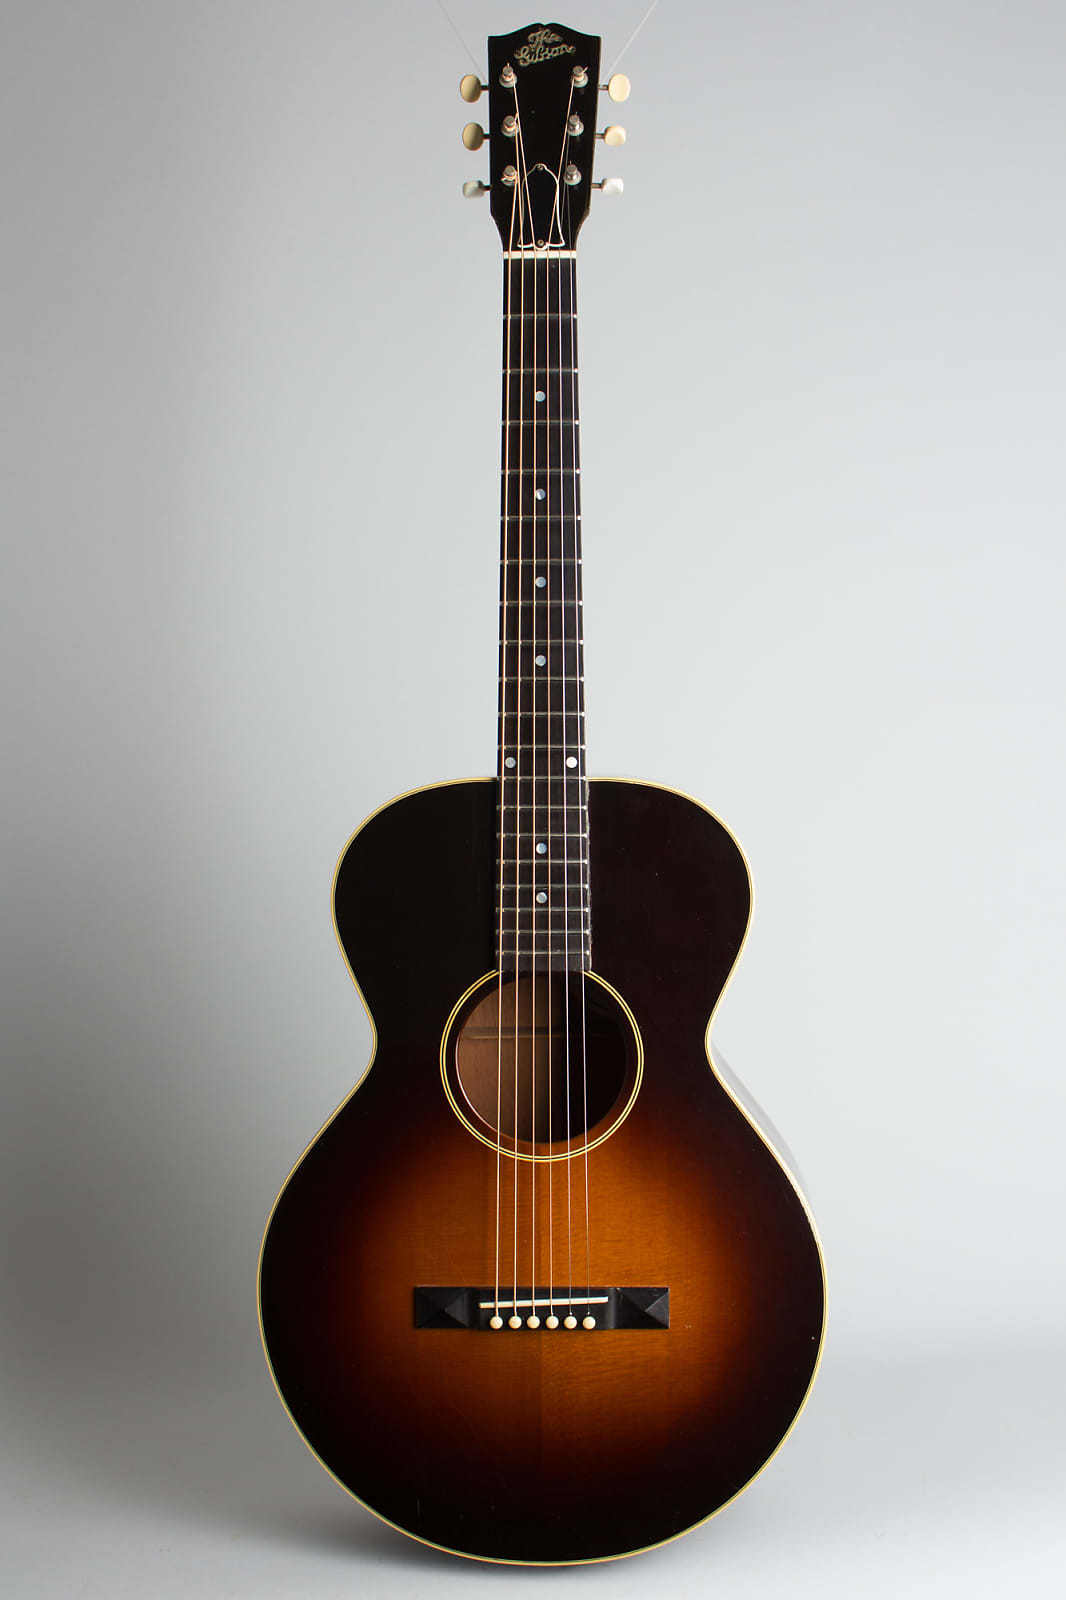 Gibson  L-1 Flat Top Acoustic Guitar (1991), ser. #92731022, original brown tolex hard shell case.